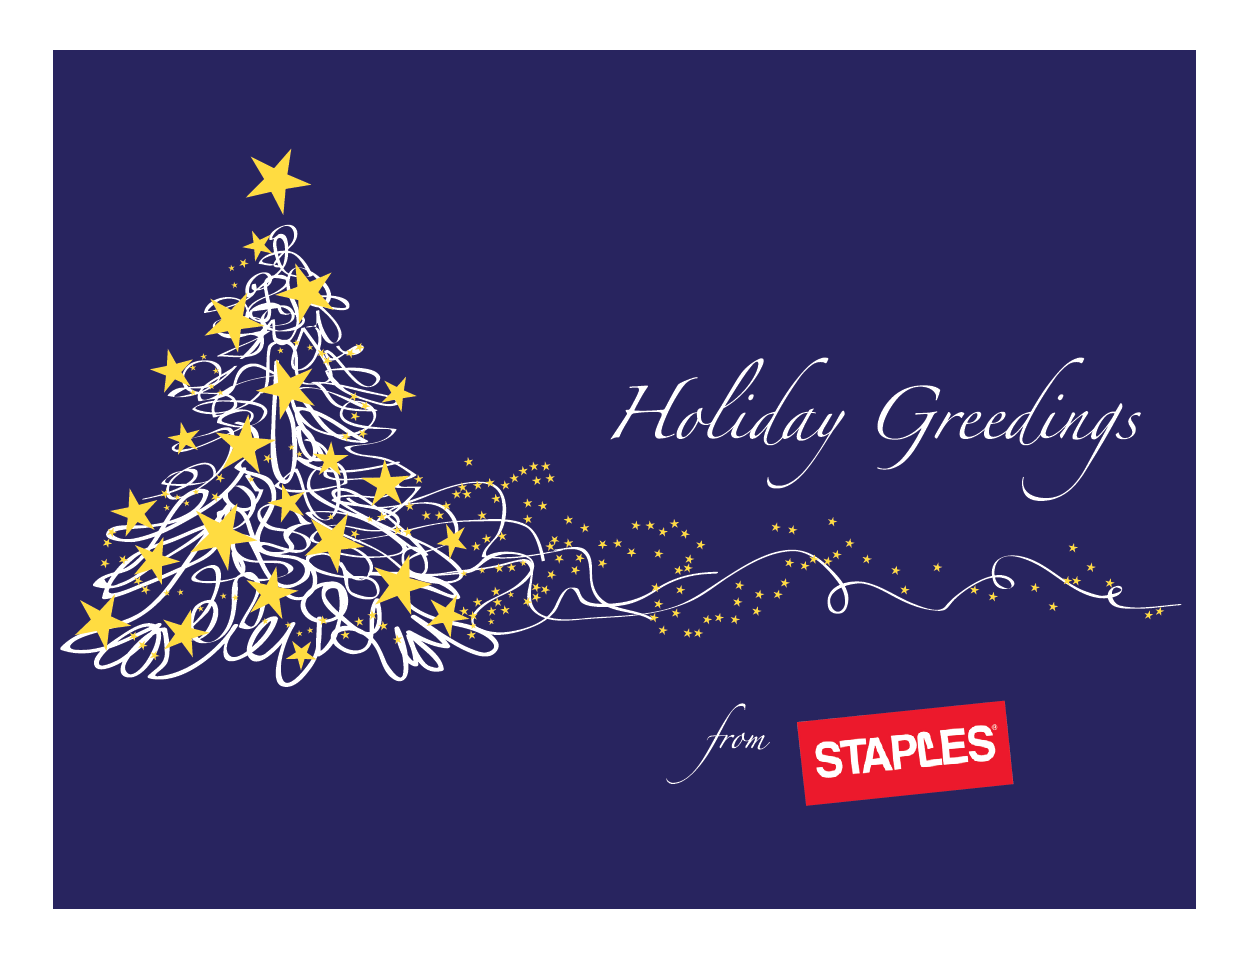 Staples Greeting Cards Active Wholesale